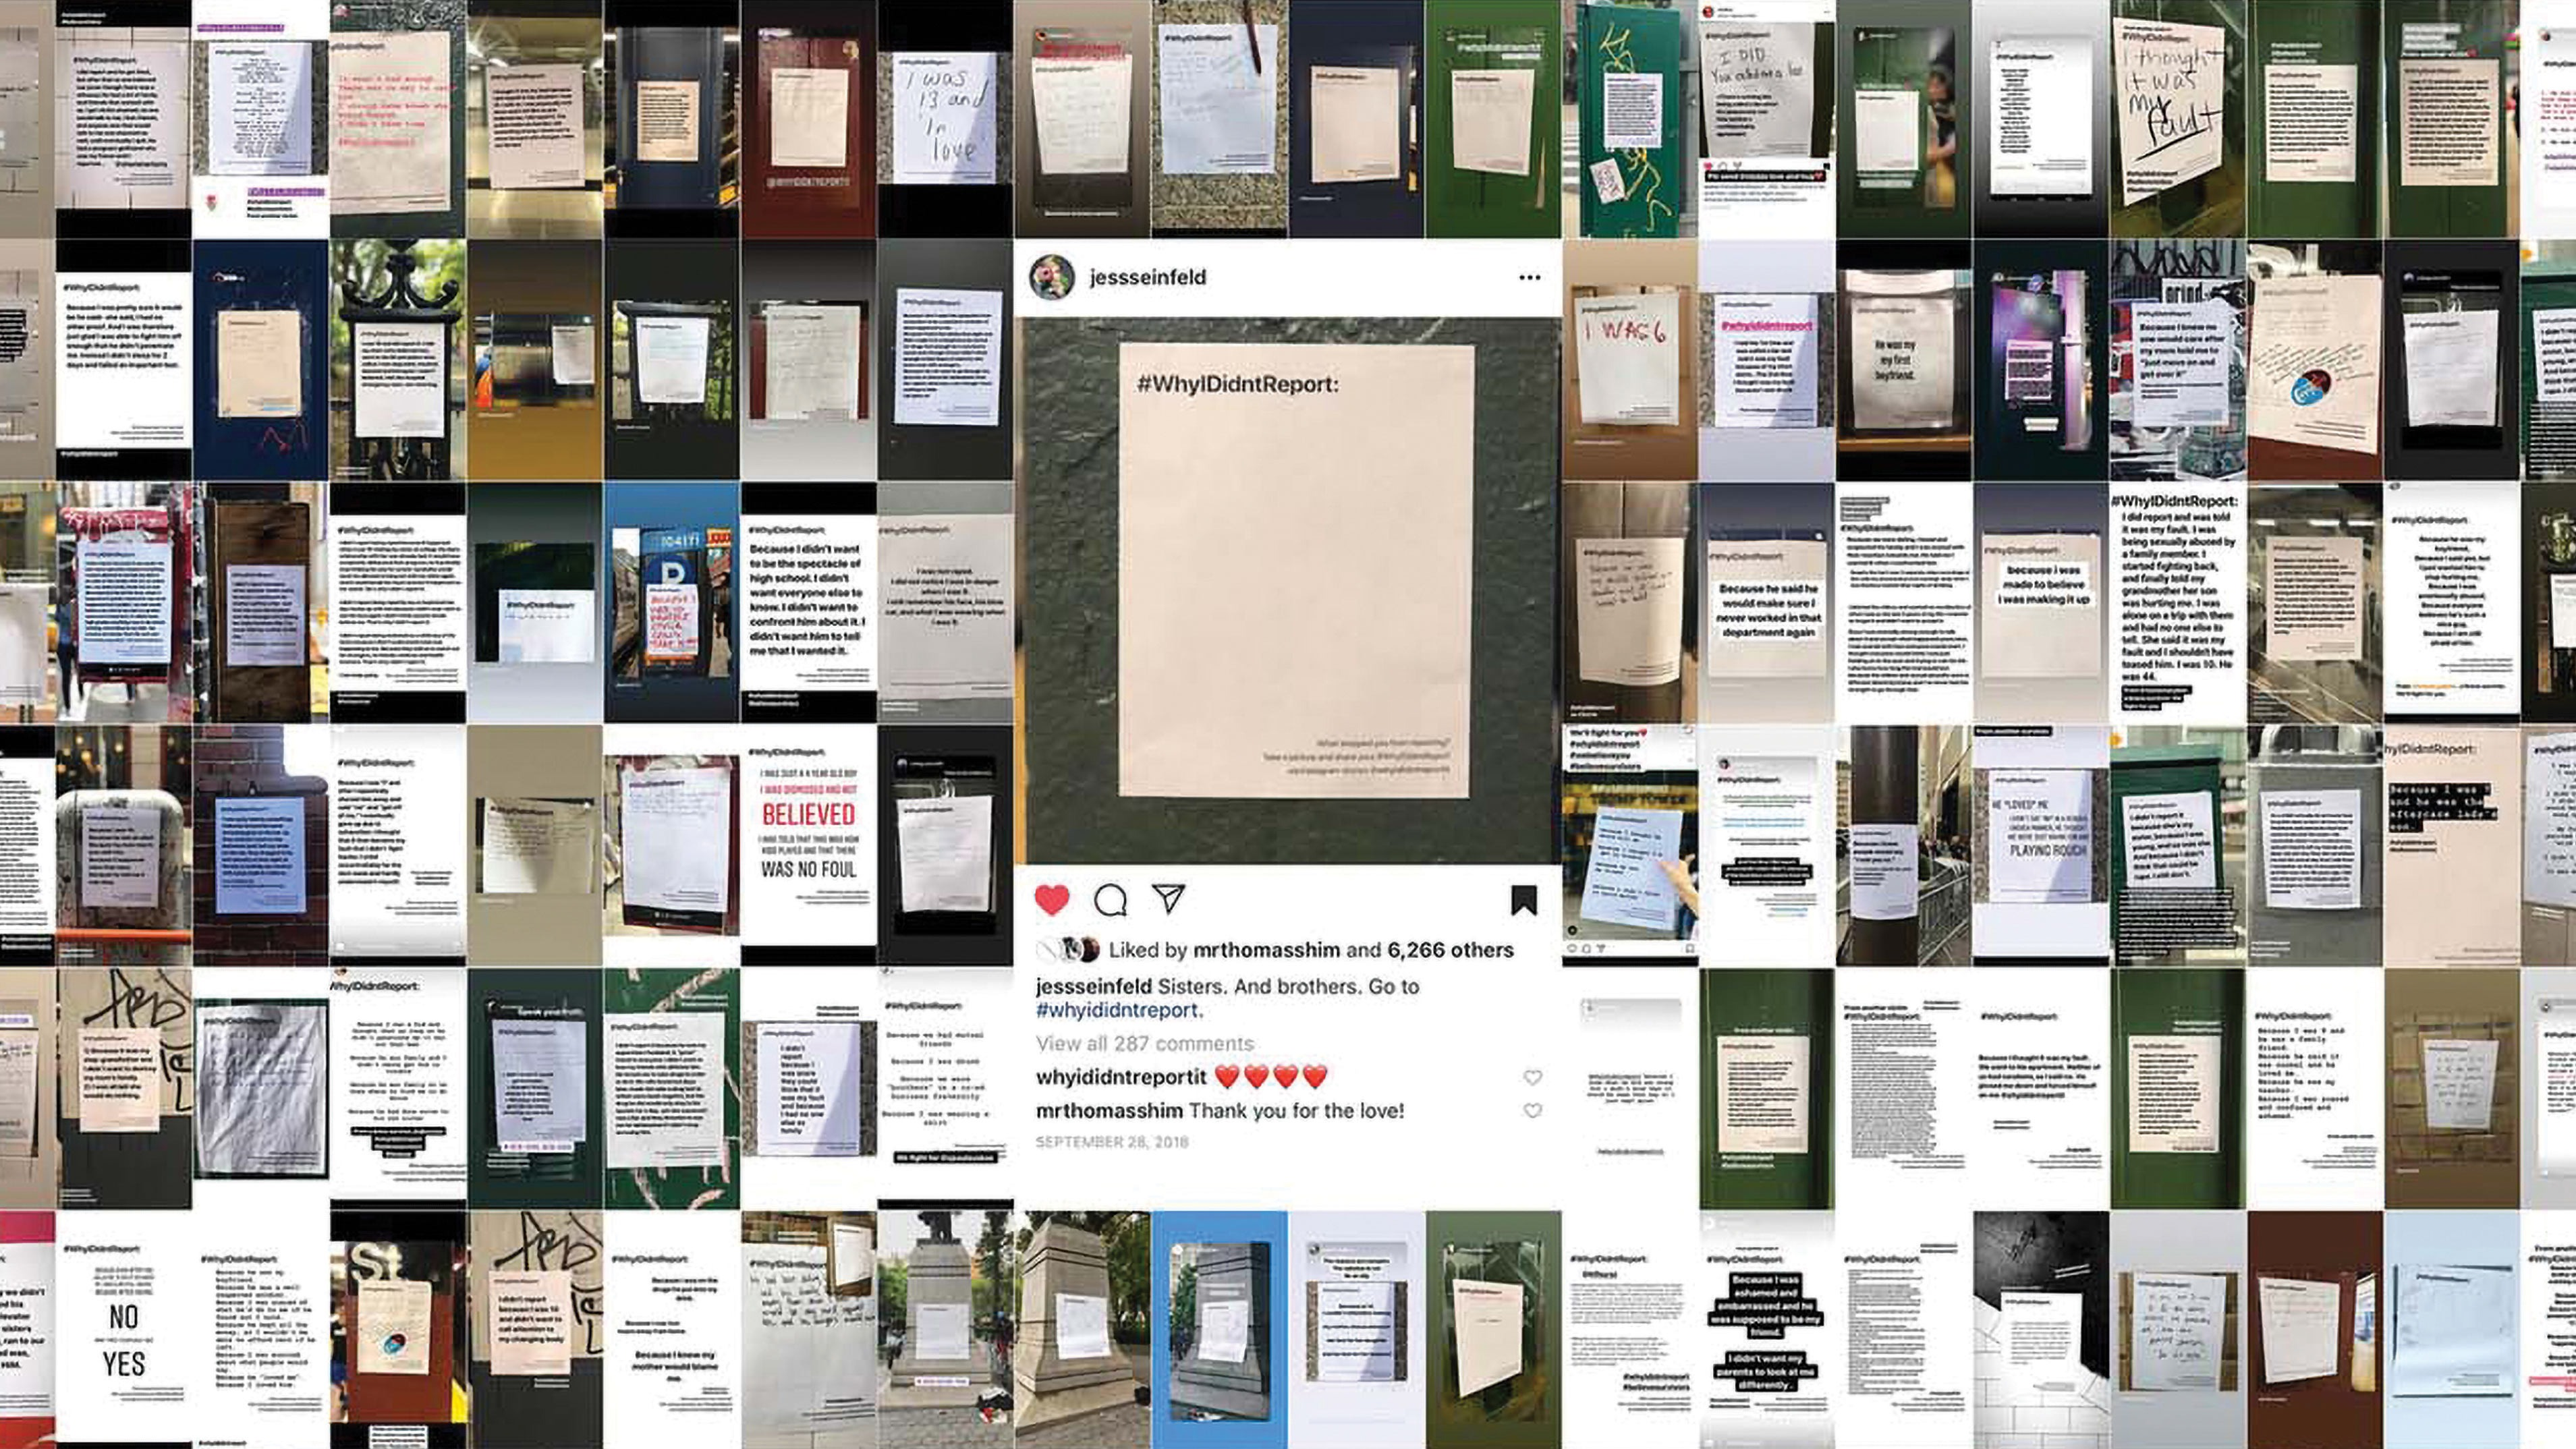 A dense collage of the #whyididntreportit posters